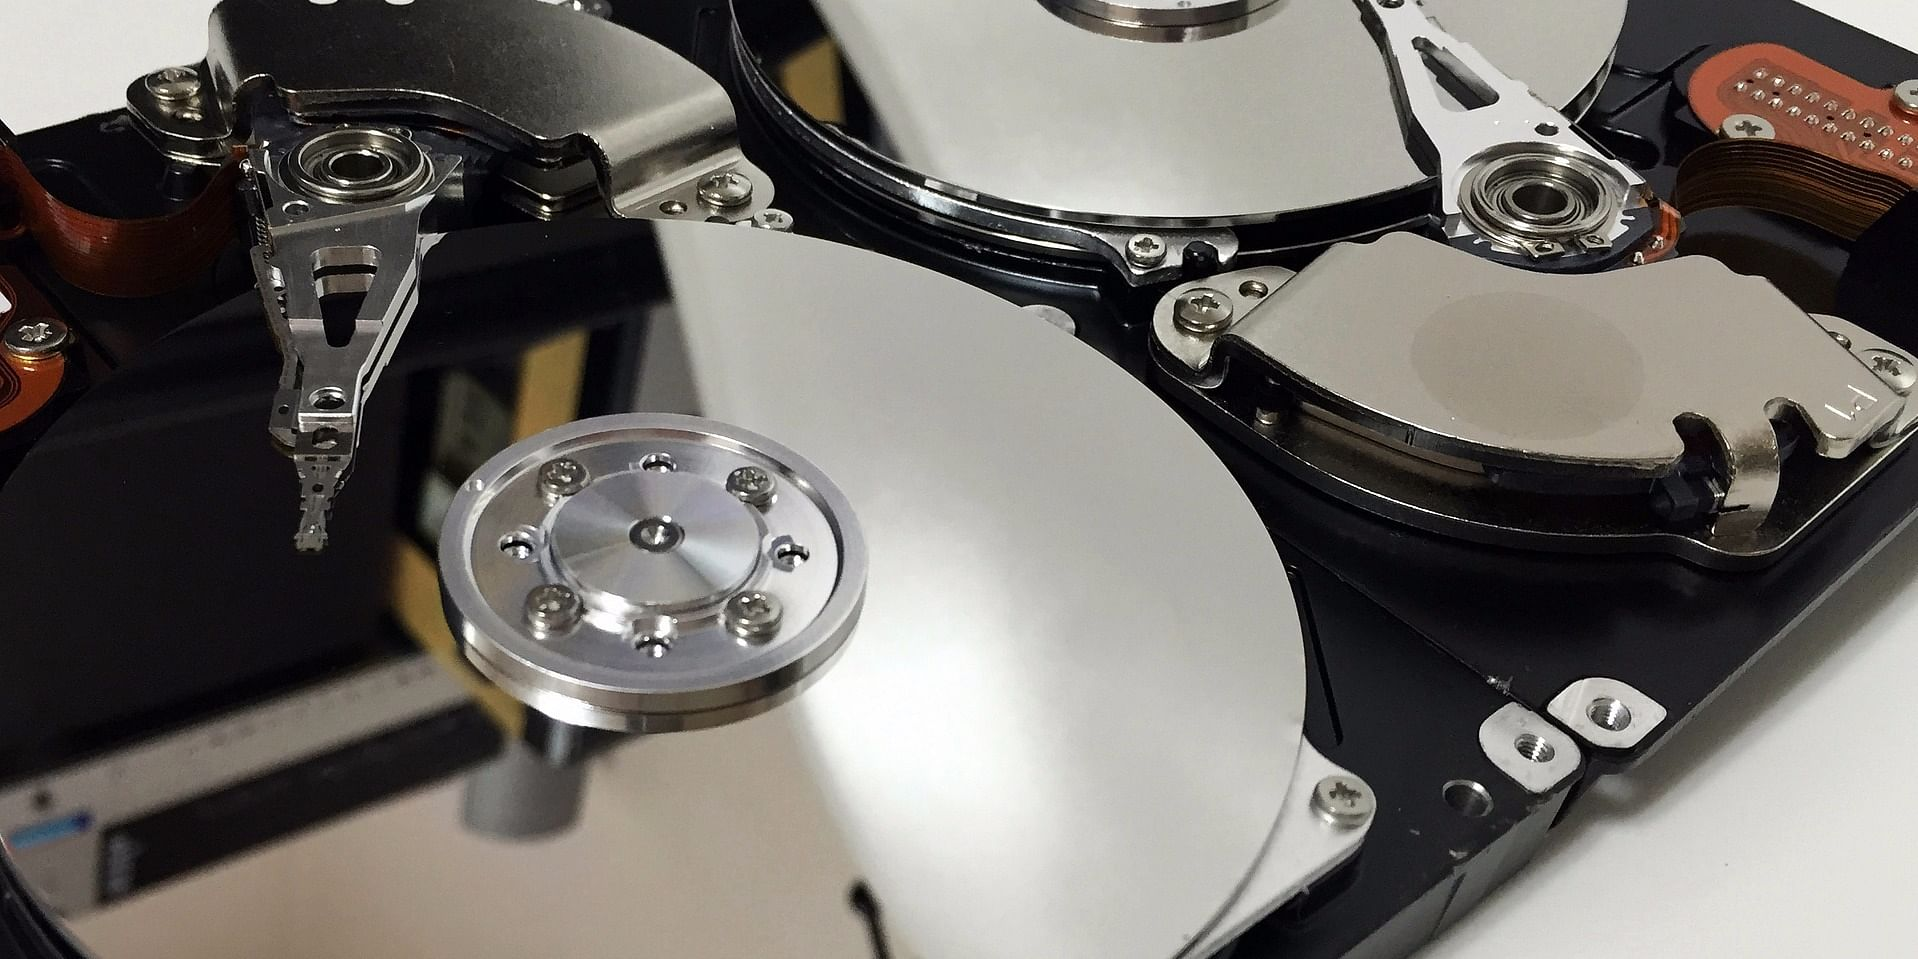 How to use data recovery tools more effectively